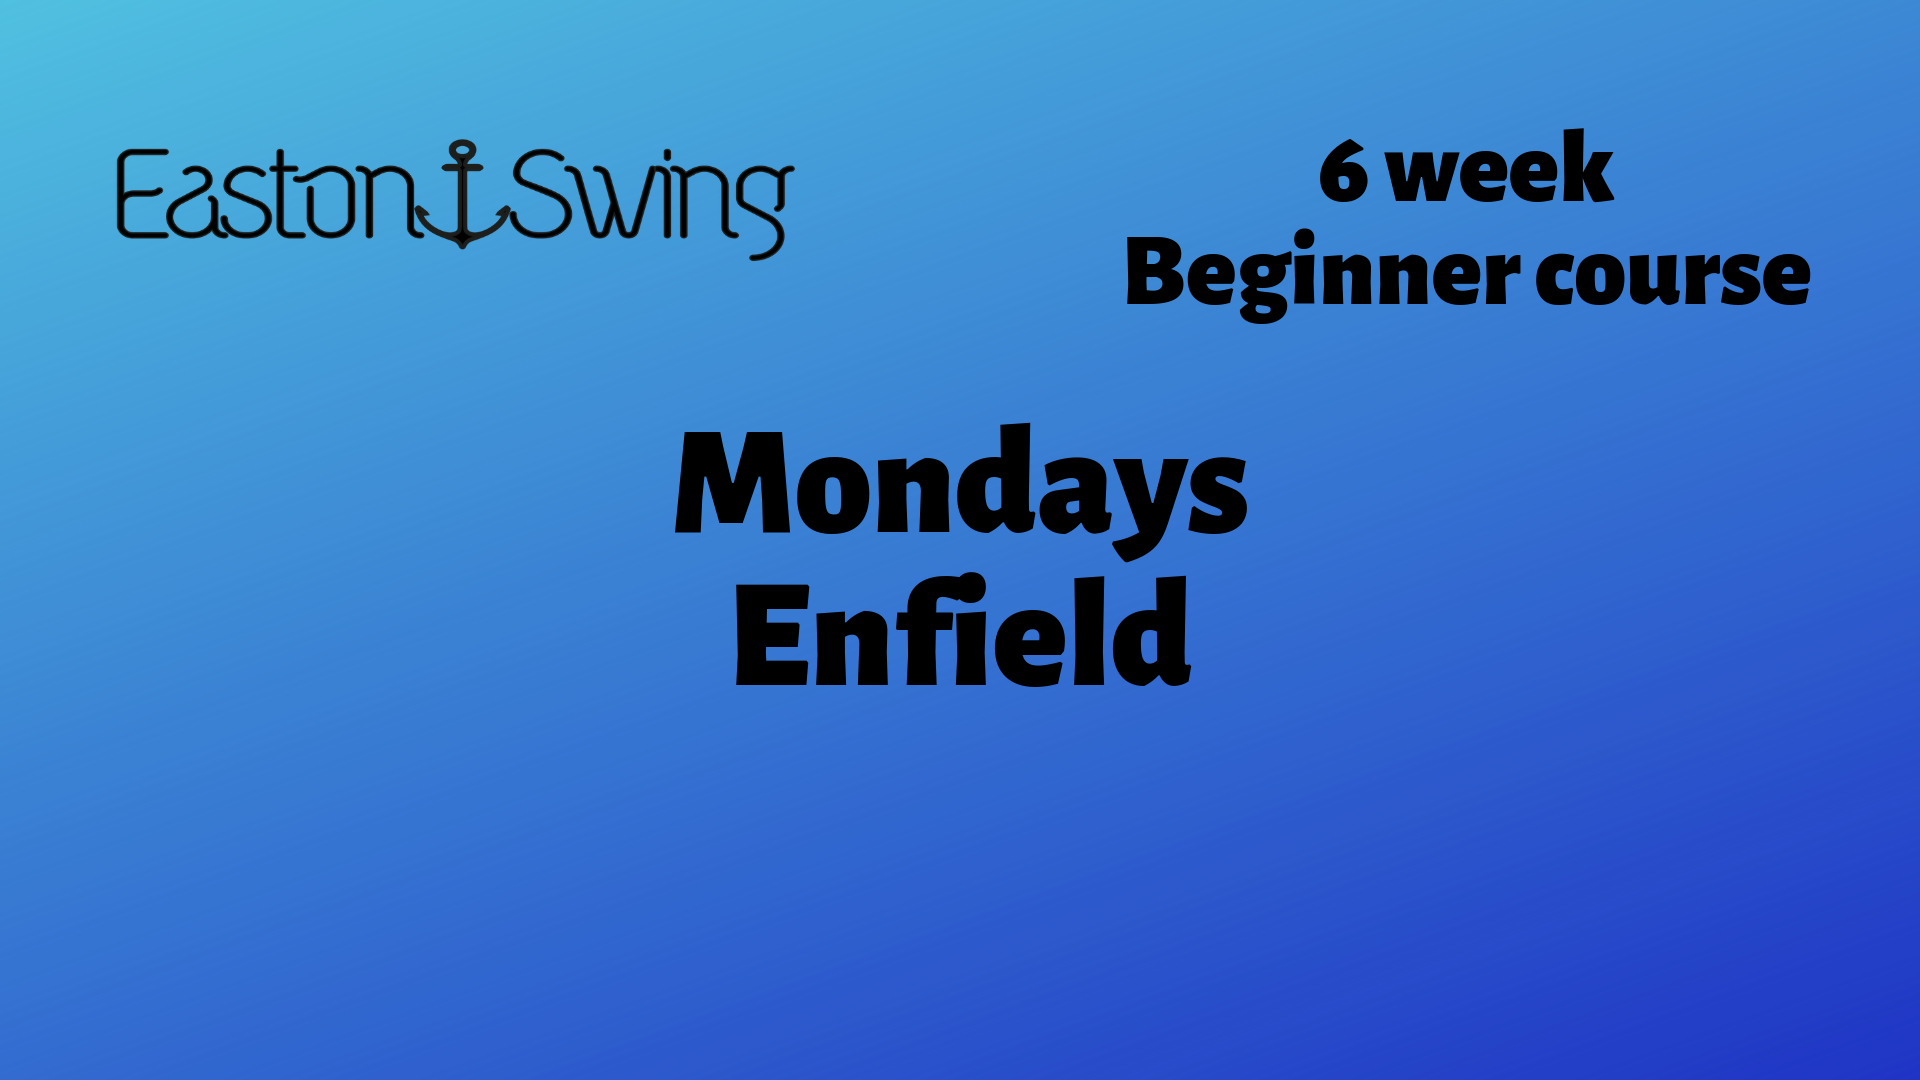 west coast swing mondays, Blue background with EastonSwing company Logo plus text describing beginner courses